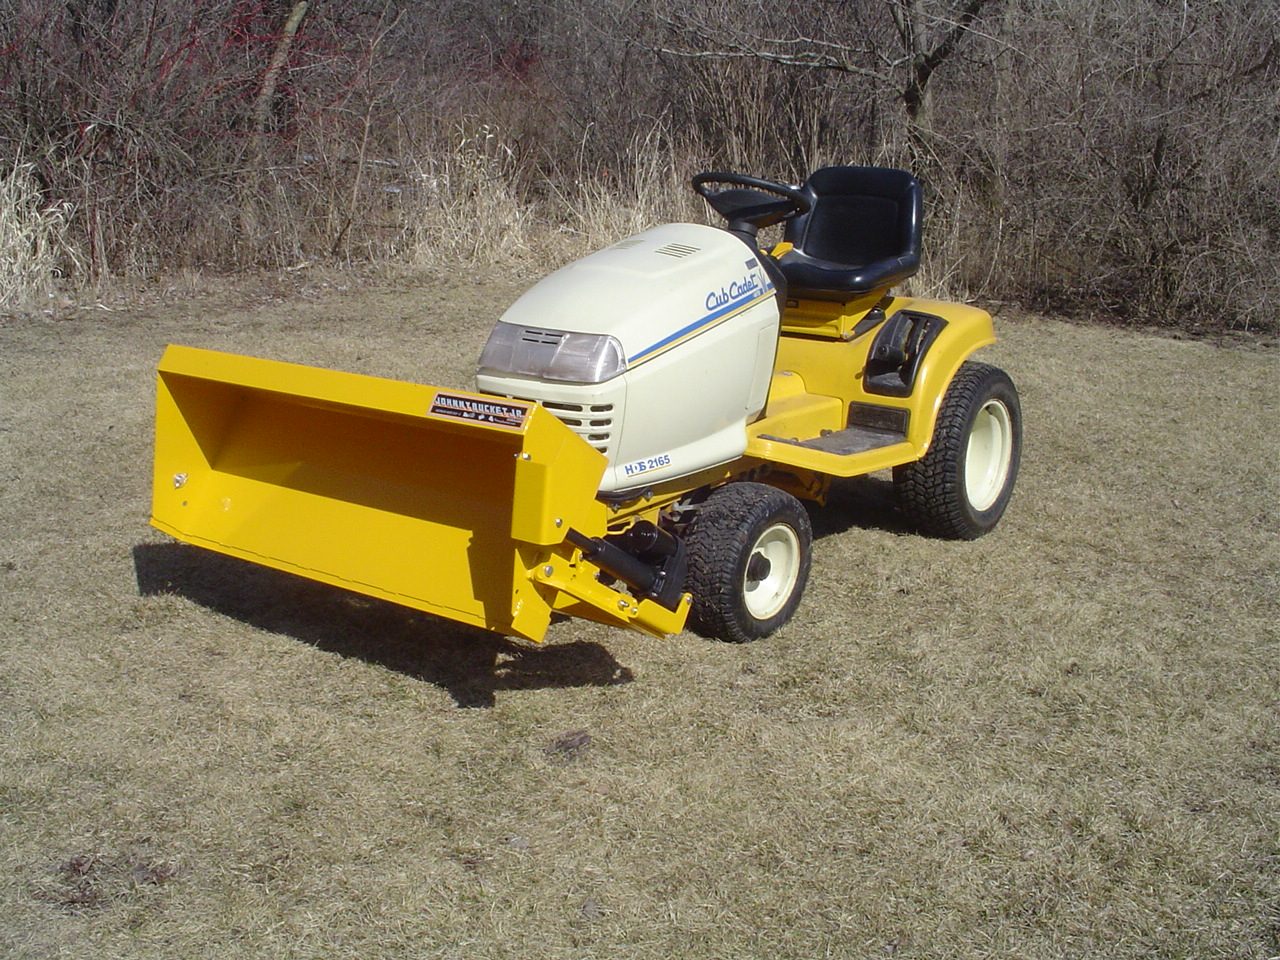 hight resolution of cc2k 014 jpg 604161 bytes johnny bucket jr cub cadet 2000 and 2500 series